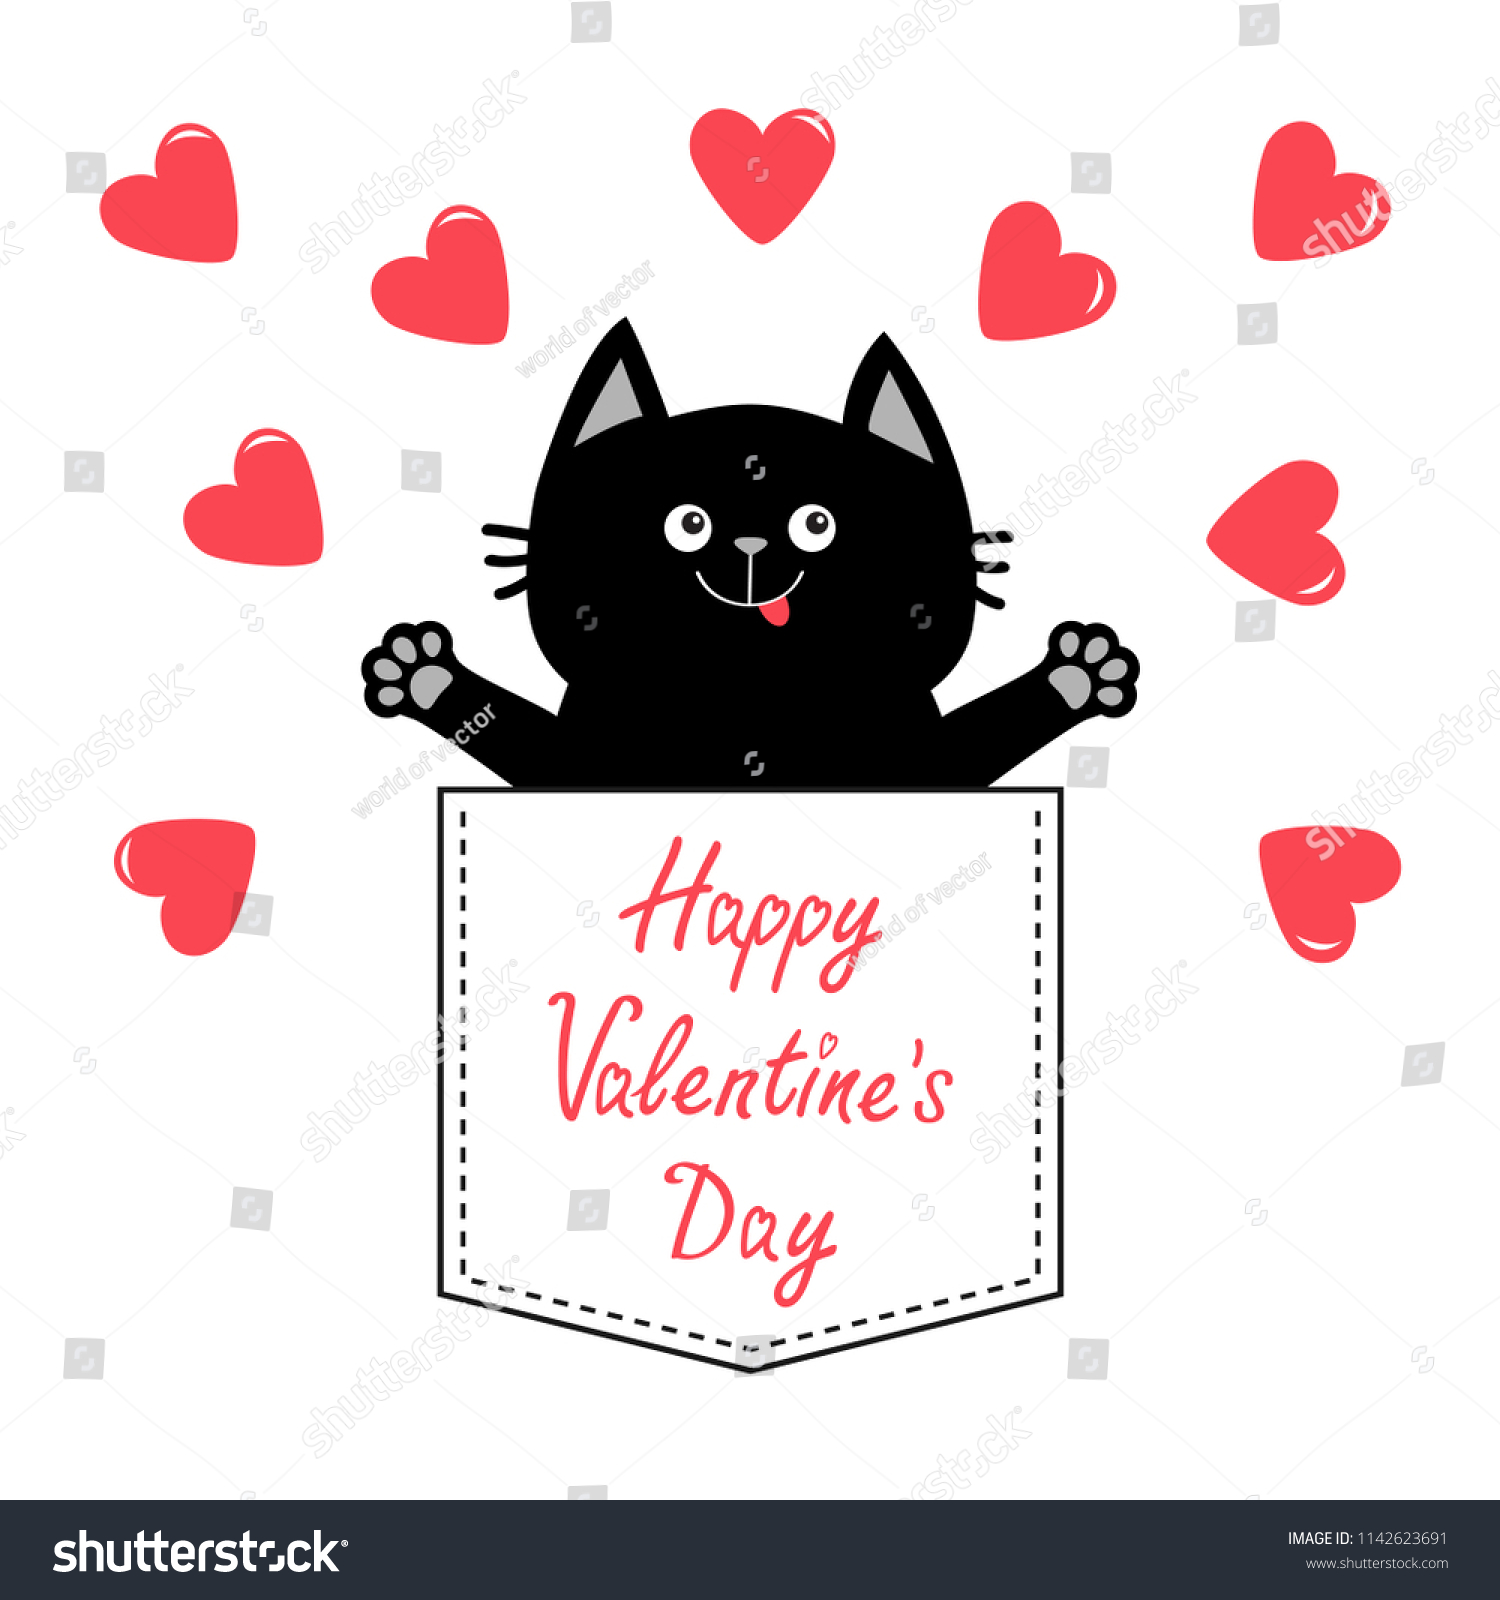 1d6284022c2 Happy Valentines Day. Cat in pink pocket. Red heart Love card. Hands up.  Give me a hug. Cute cartoon pet animal. Kitten kitty character. White  background.